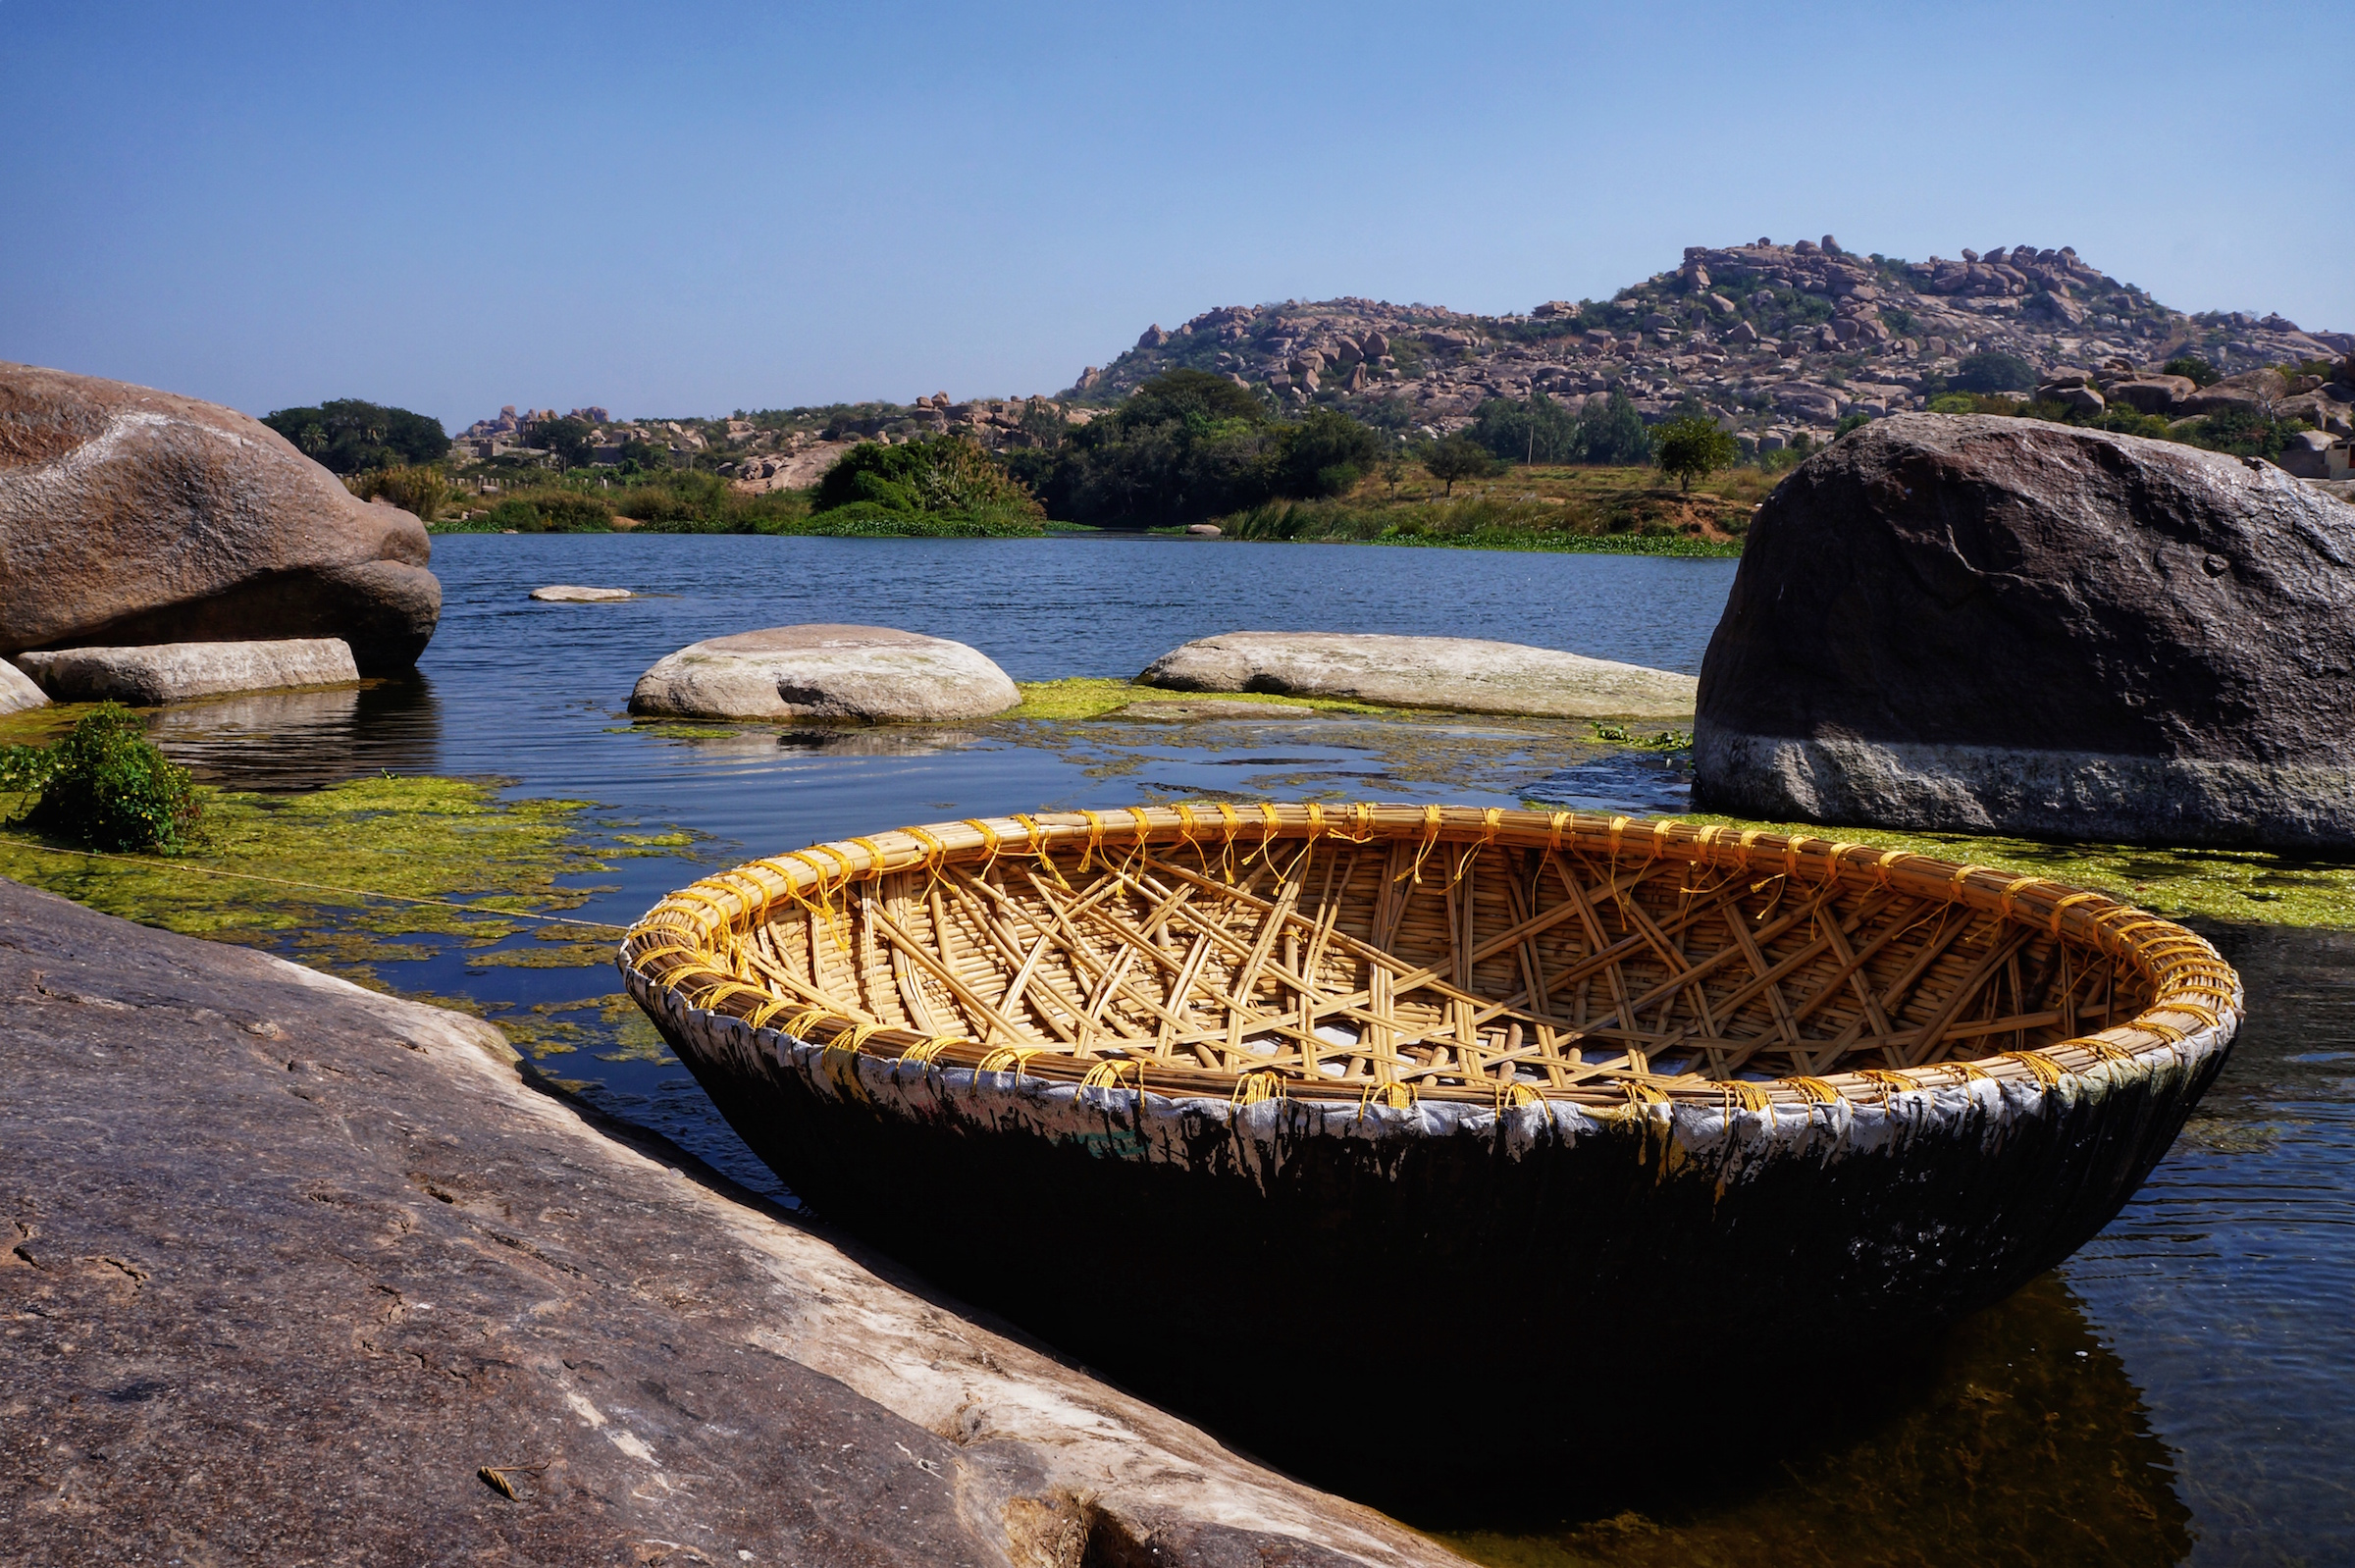 A coracle boat used to ferry visitors across the river.